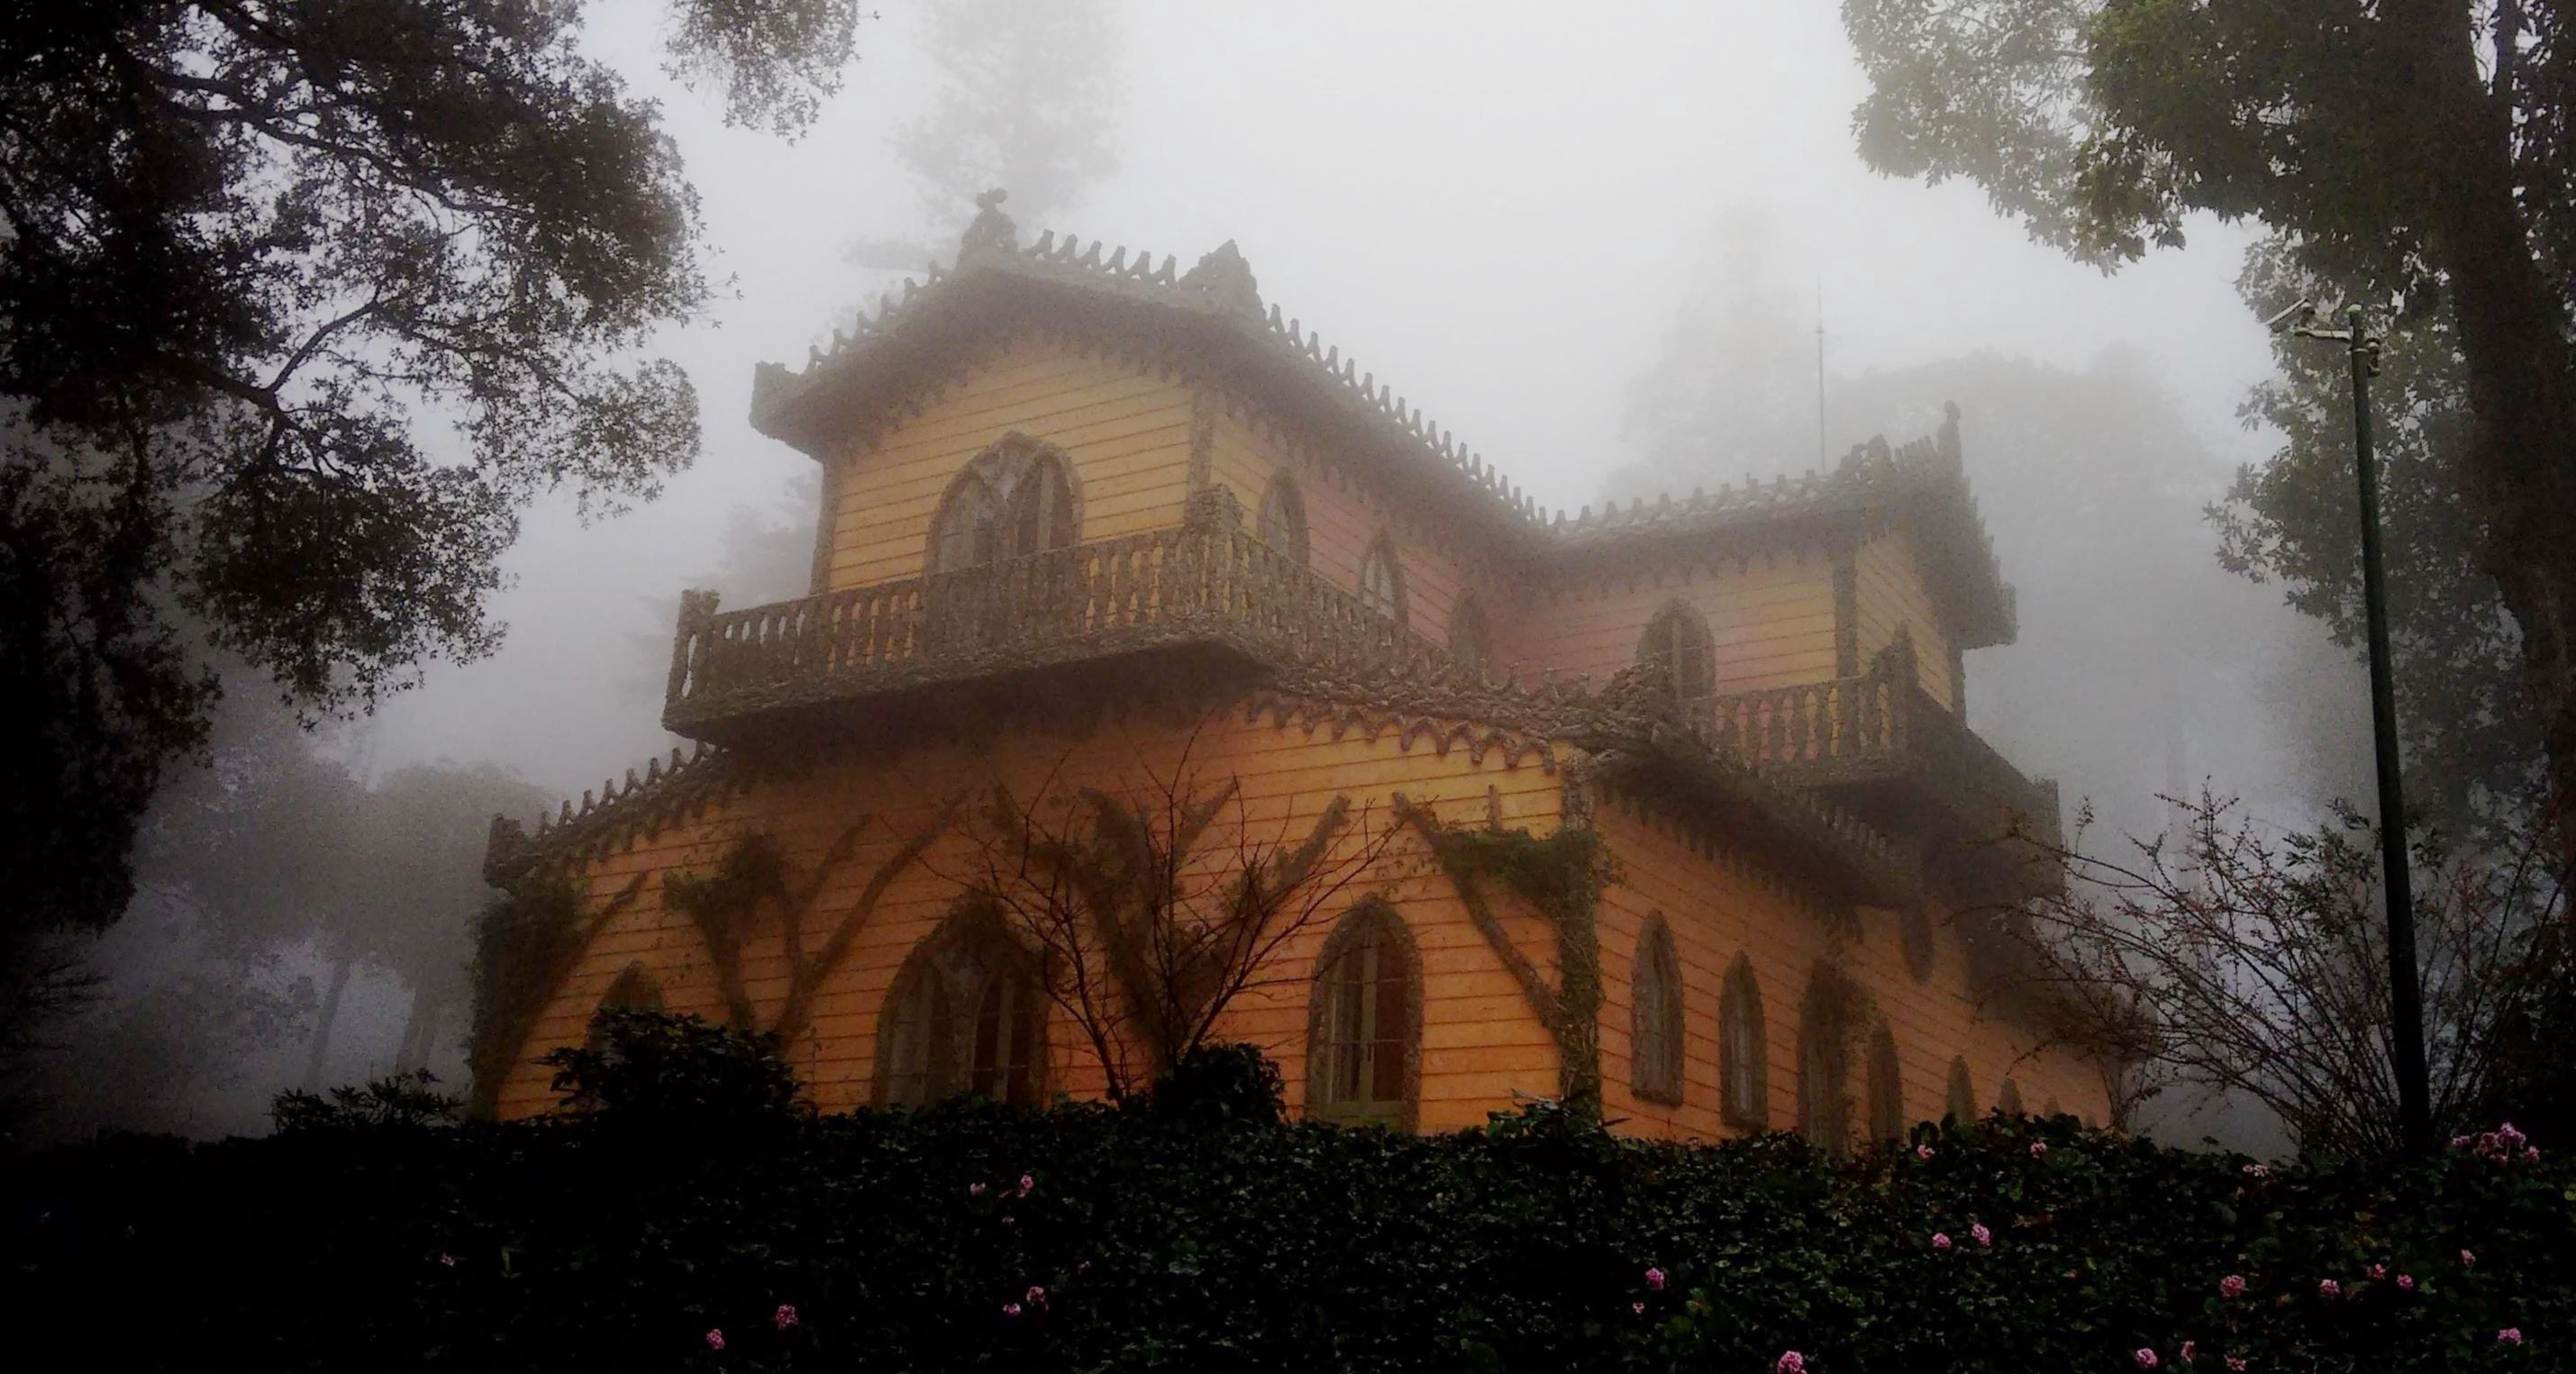 The countess's chalet in Sintra